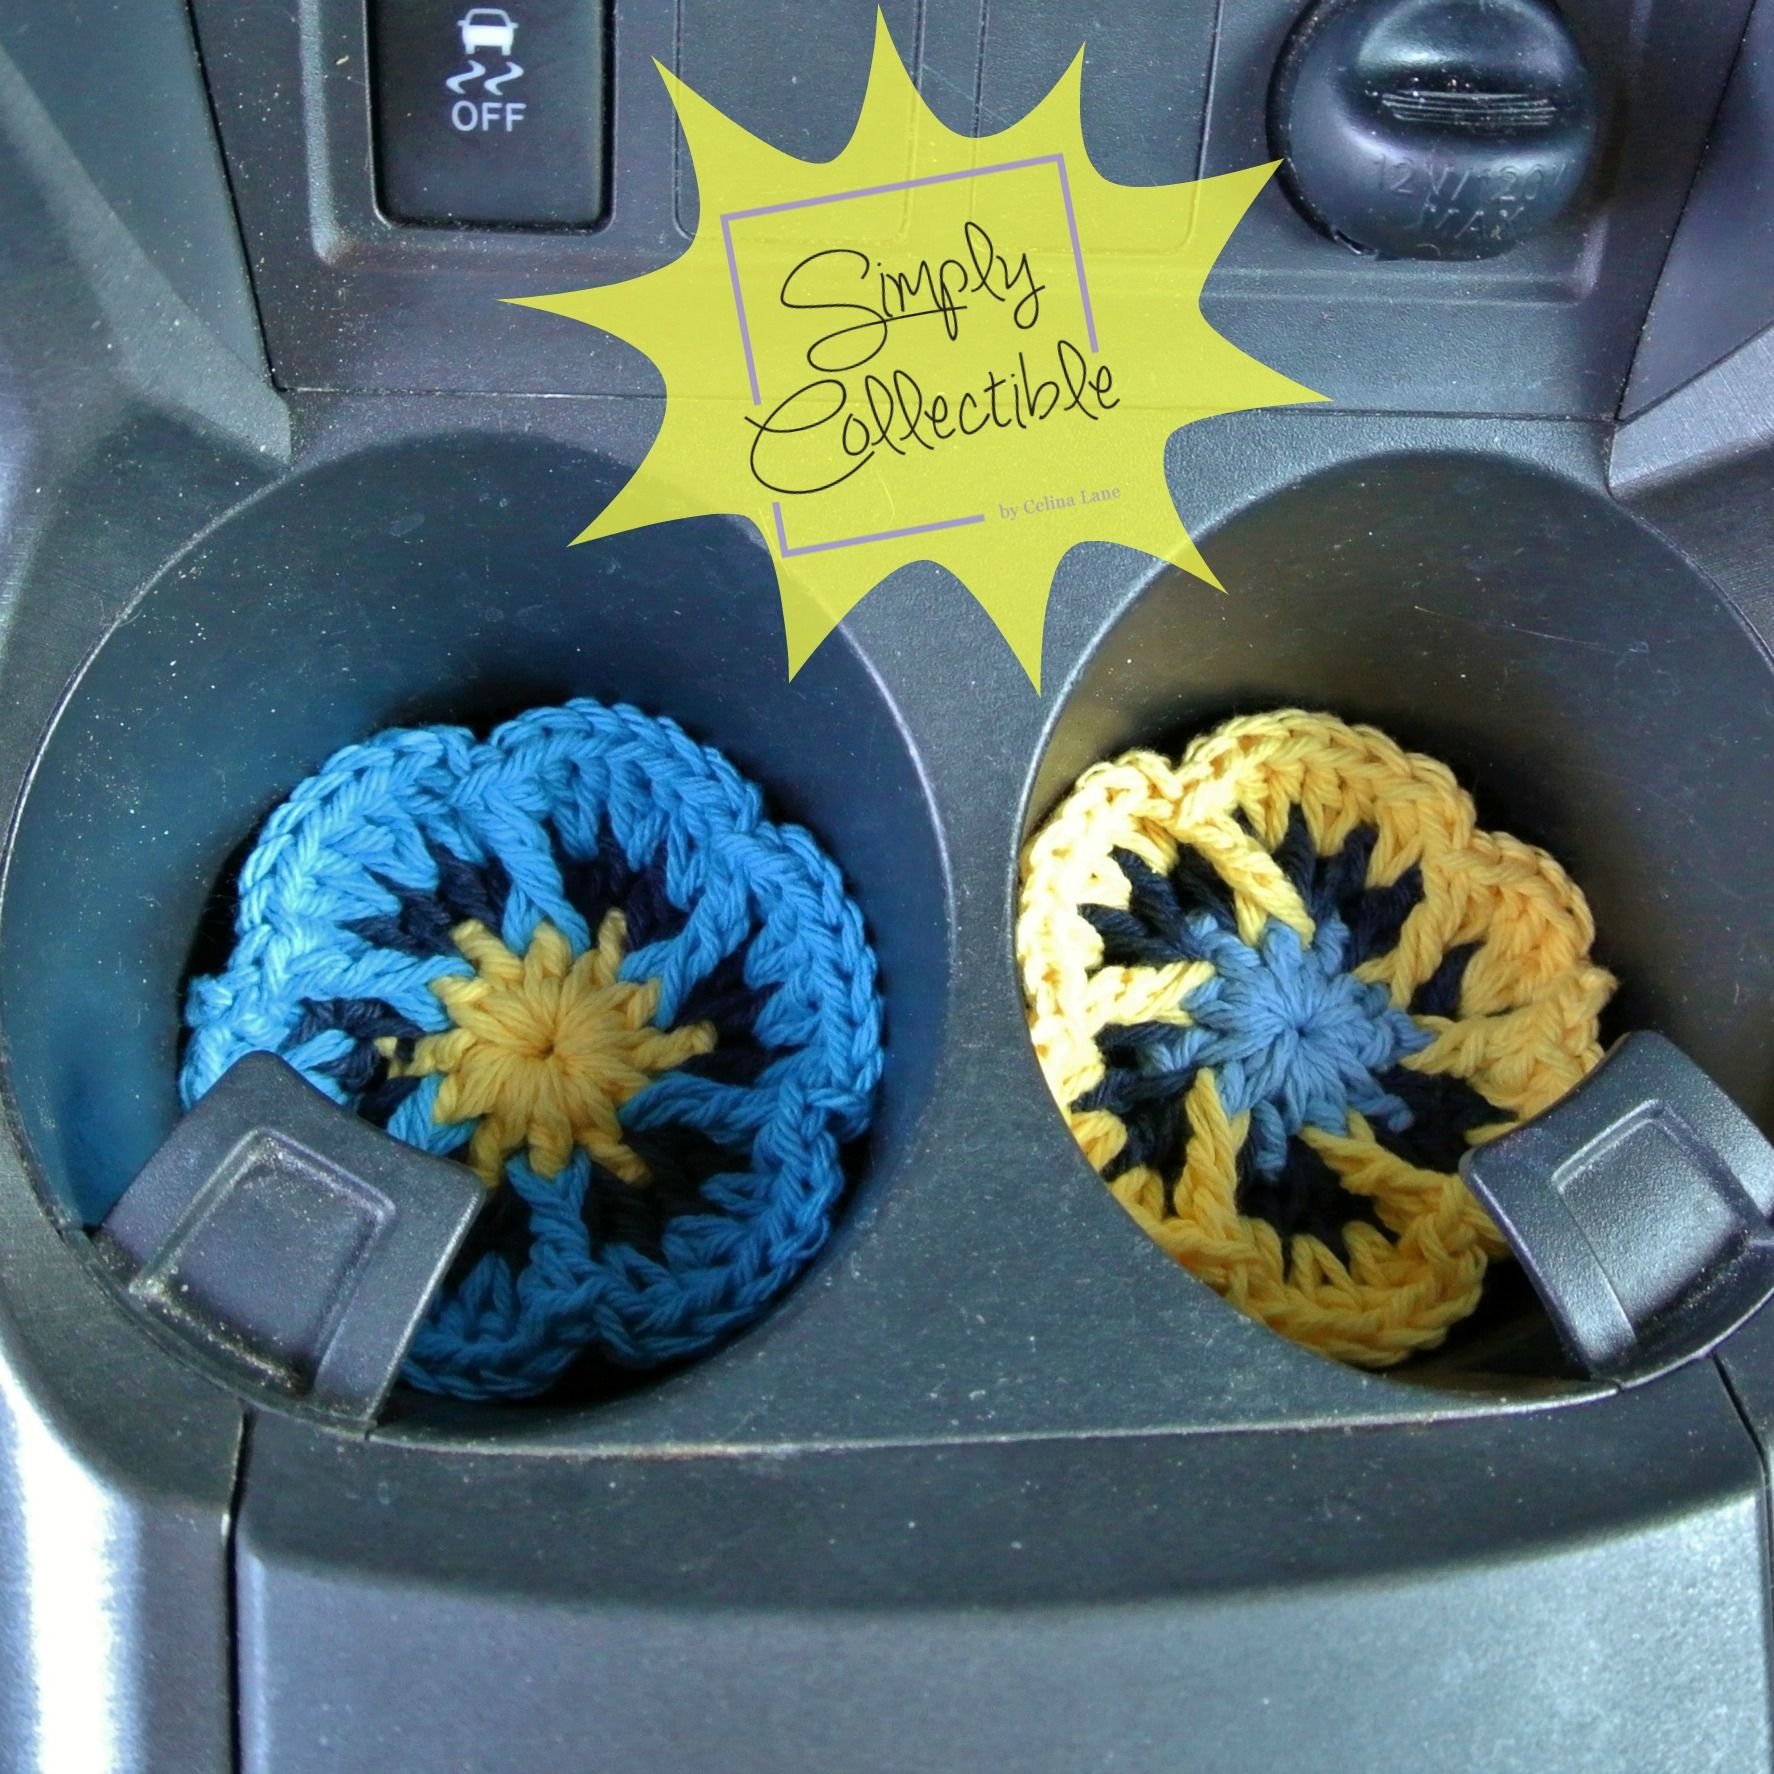 Flower Cup Holder Liners by Simply Collectible | Crochet | Pinterest ...